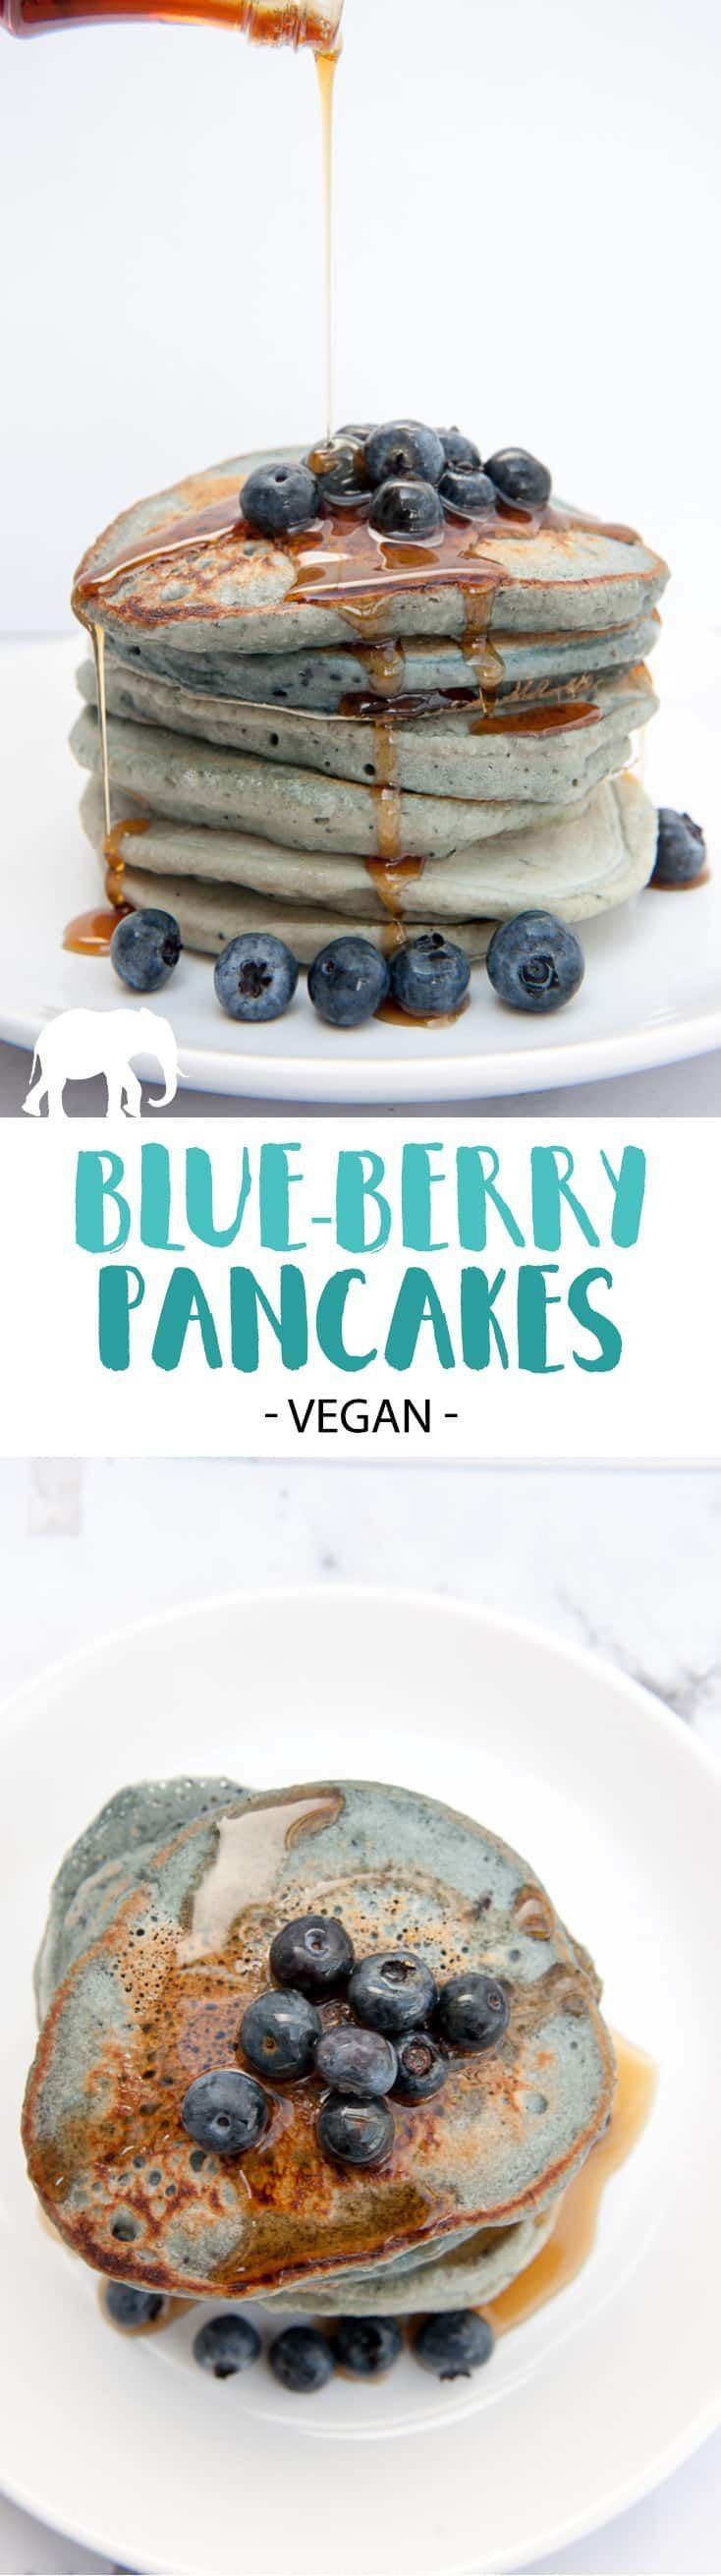 Pancakes - These naturally colored pancakes are perfect for kids! |